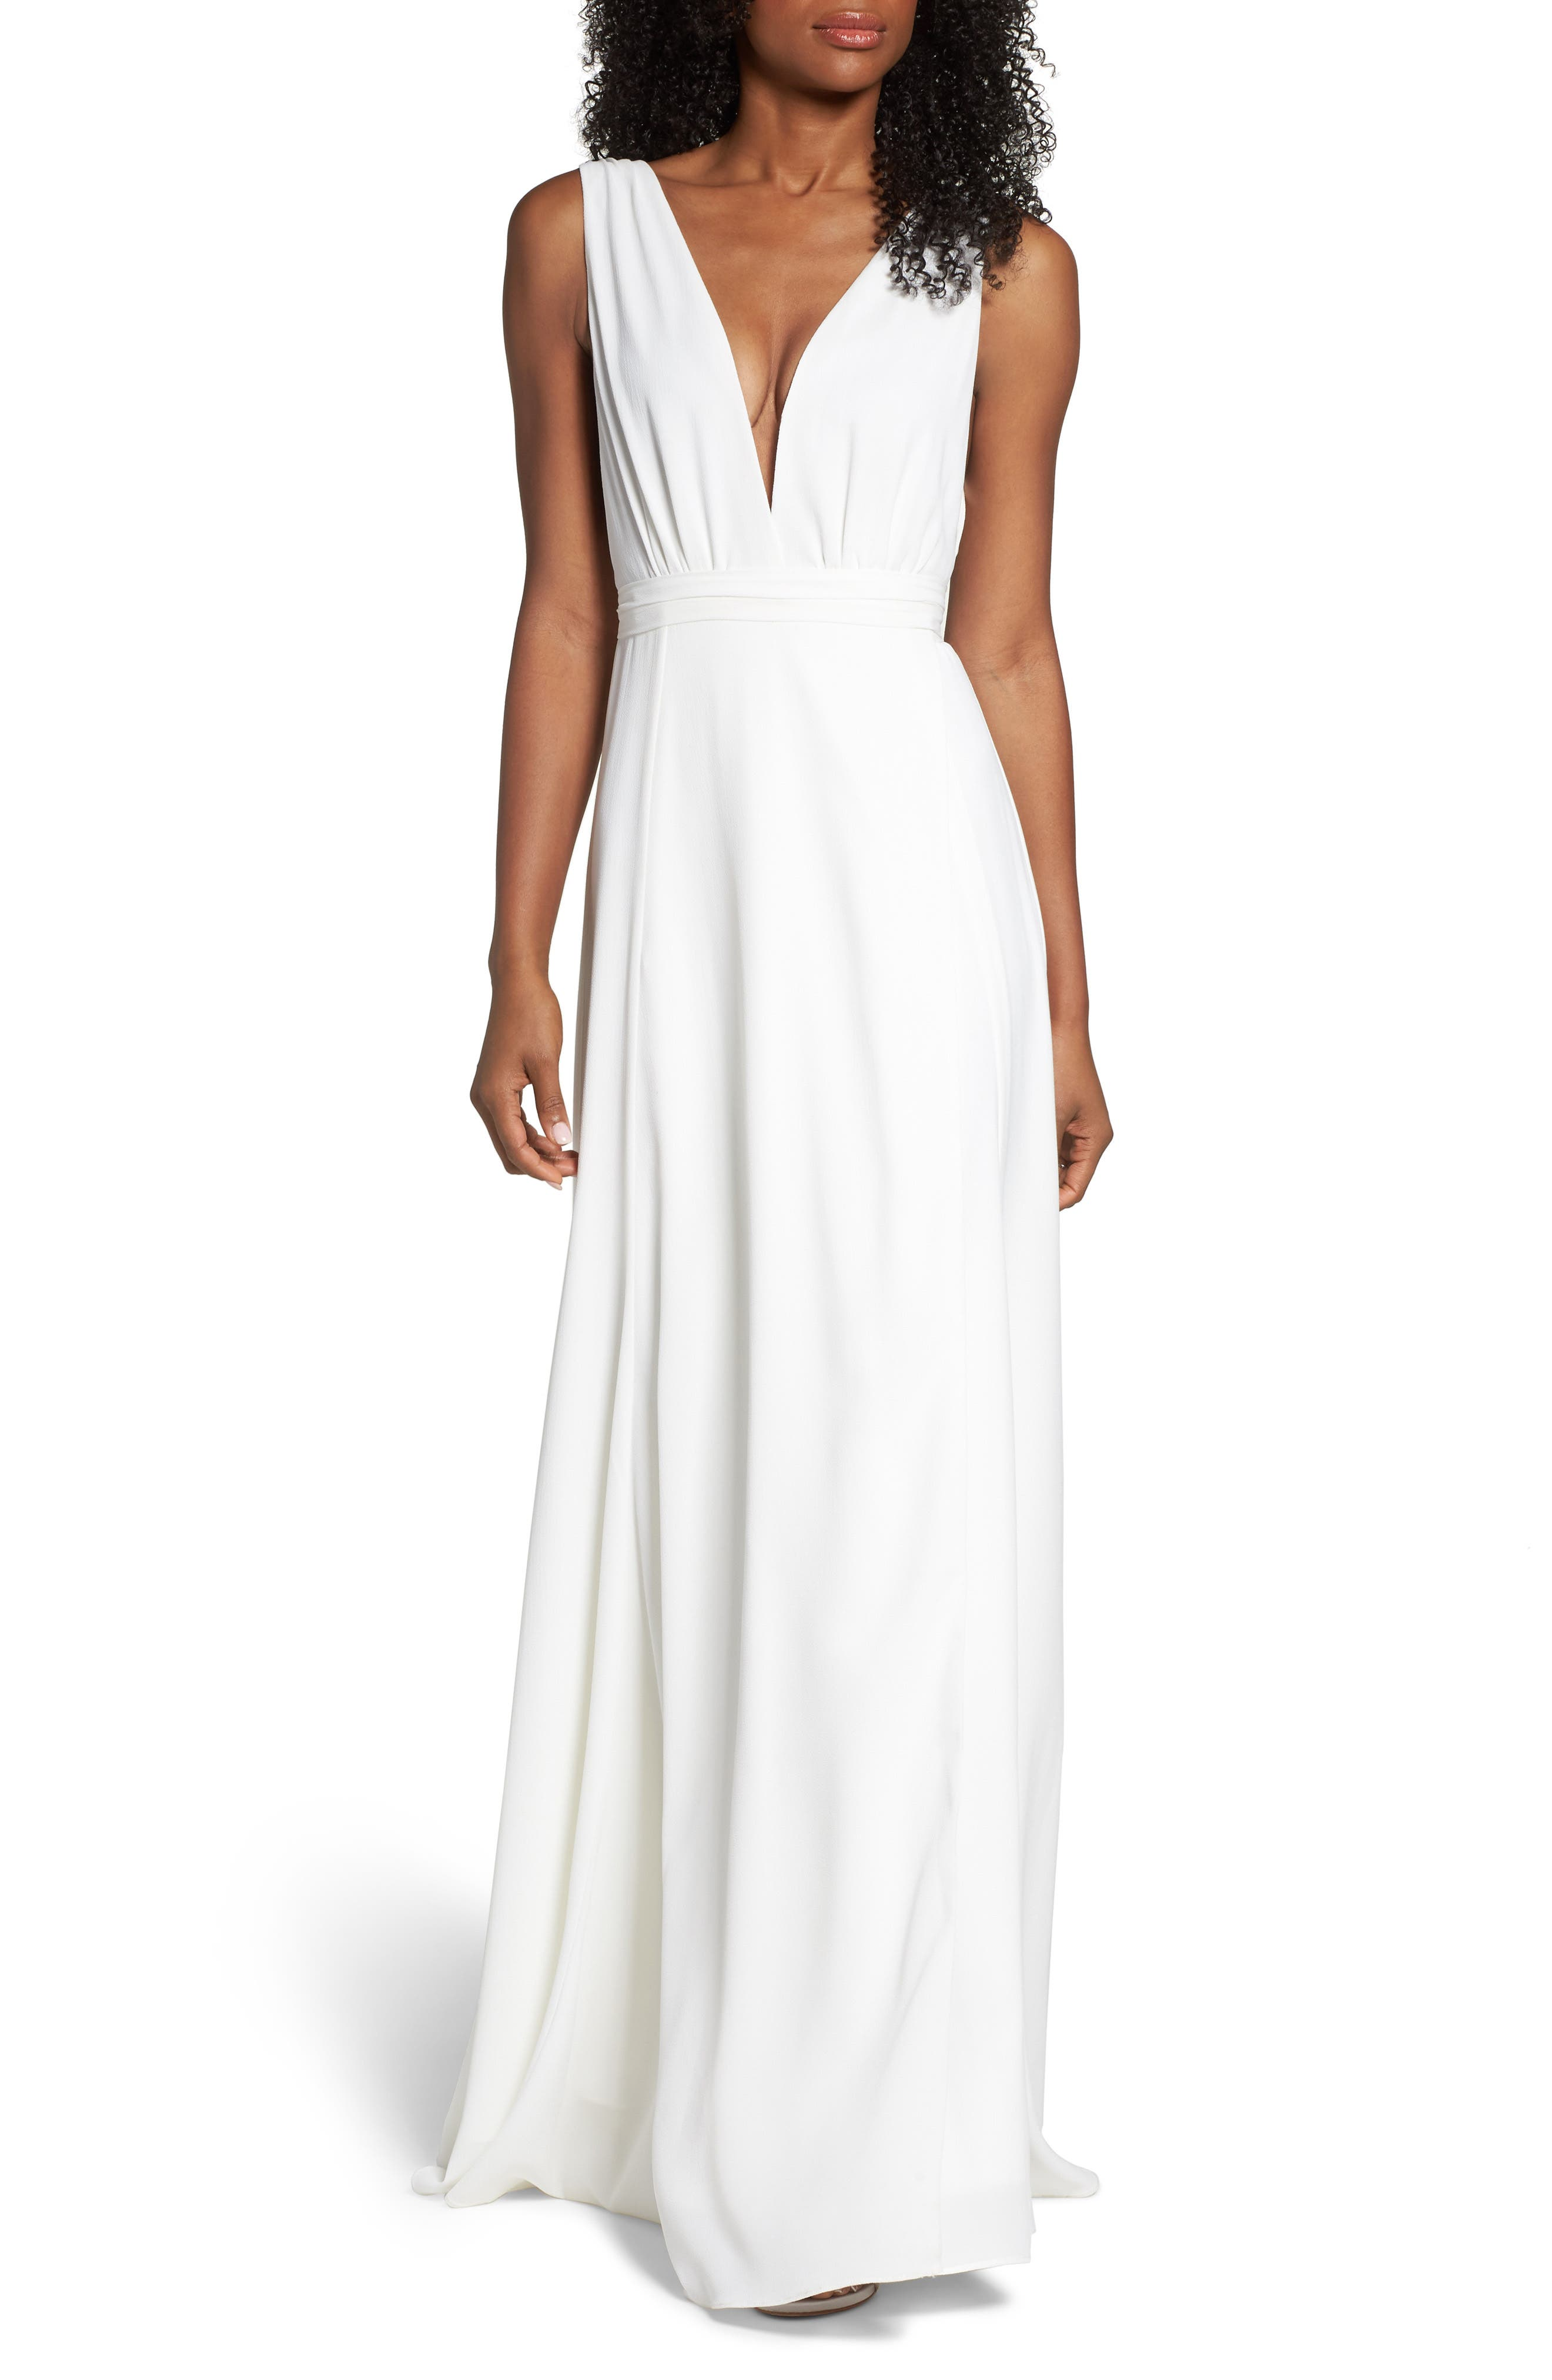 JOANNA AUGUST Jagger Plunging Wrap Dress in White